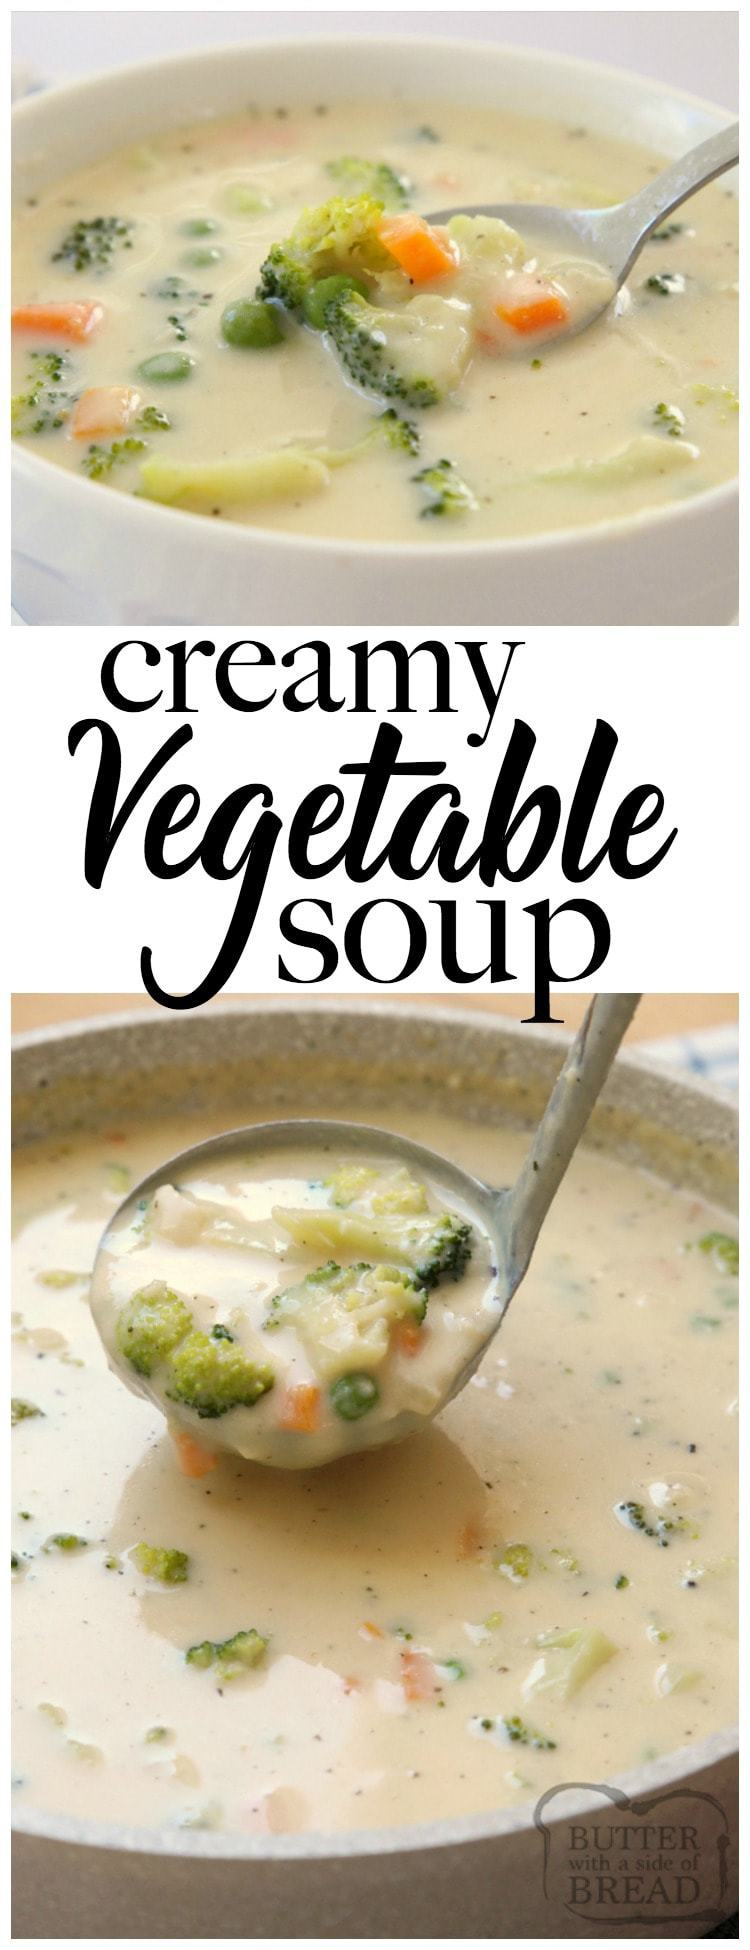 Creamy Vegetable Soup made easy in 30 minutes or less! Simple, flavorful & comforting vegetable soup recipe perfect for cold nights.Time saving tips included too! Simple #vegetable #soup #chowder #recipe from Butter With A Side of Bread